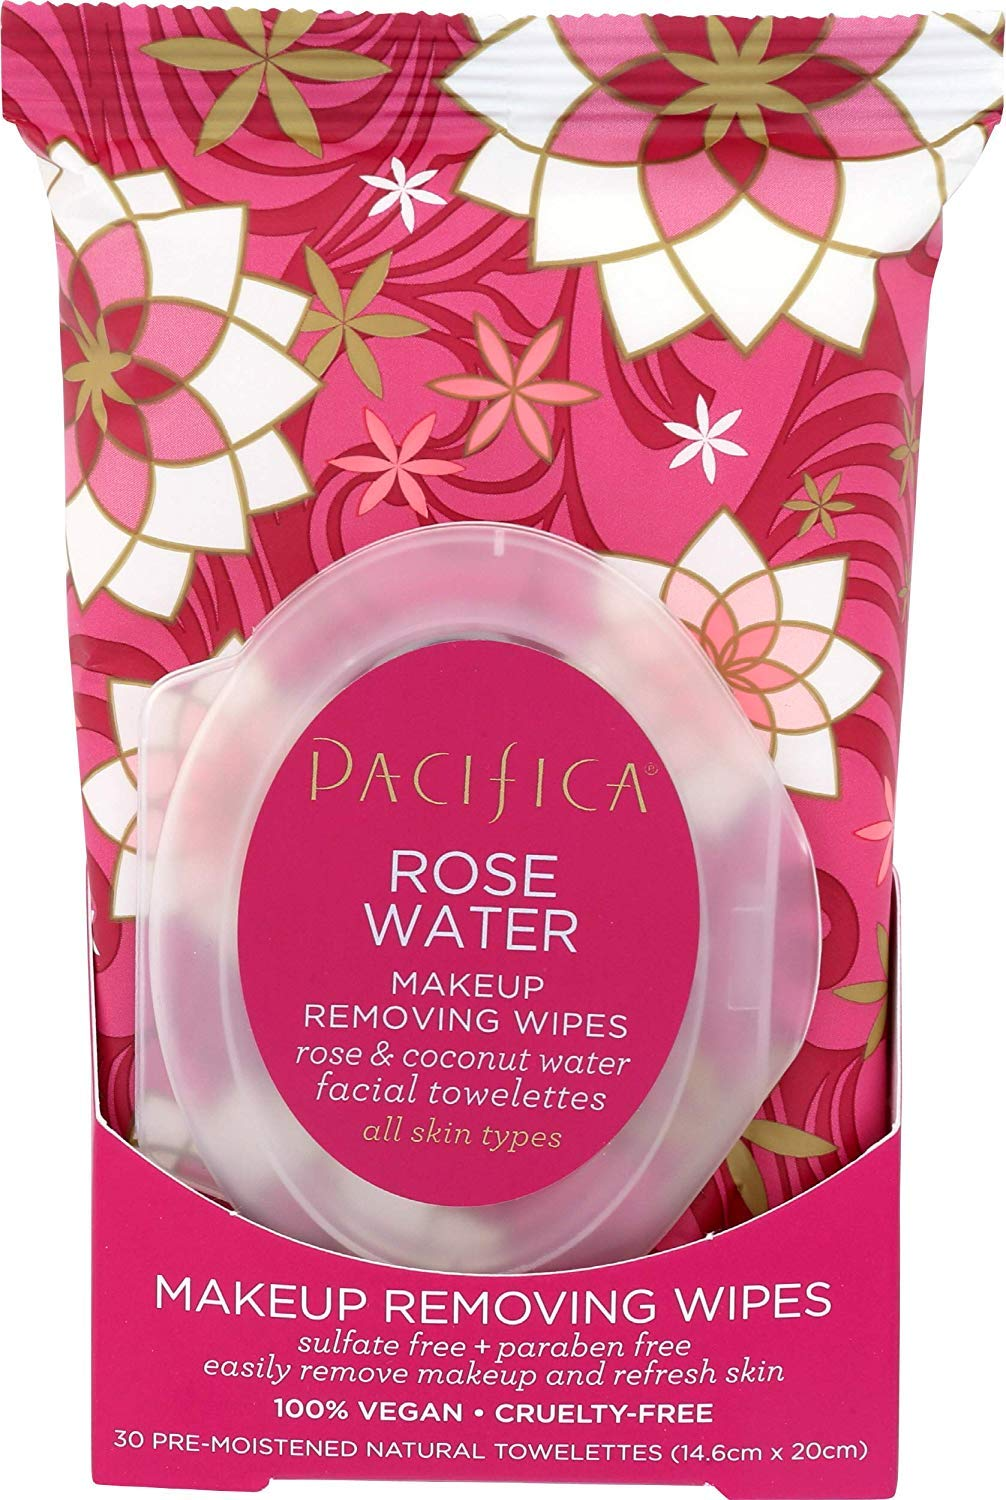 Pacifica Beauty Makeup Removing Wipes, Rose Water, 240 Count by Pacifica